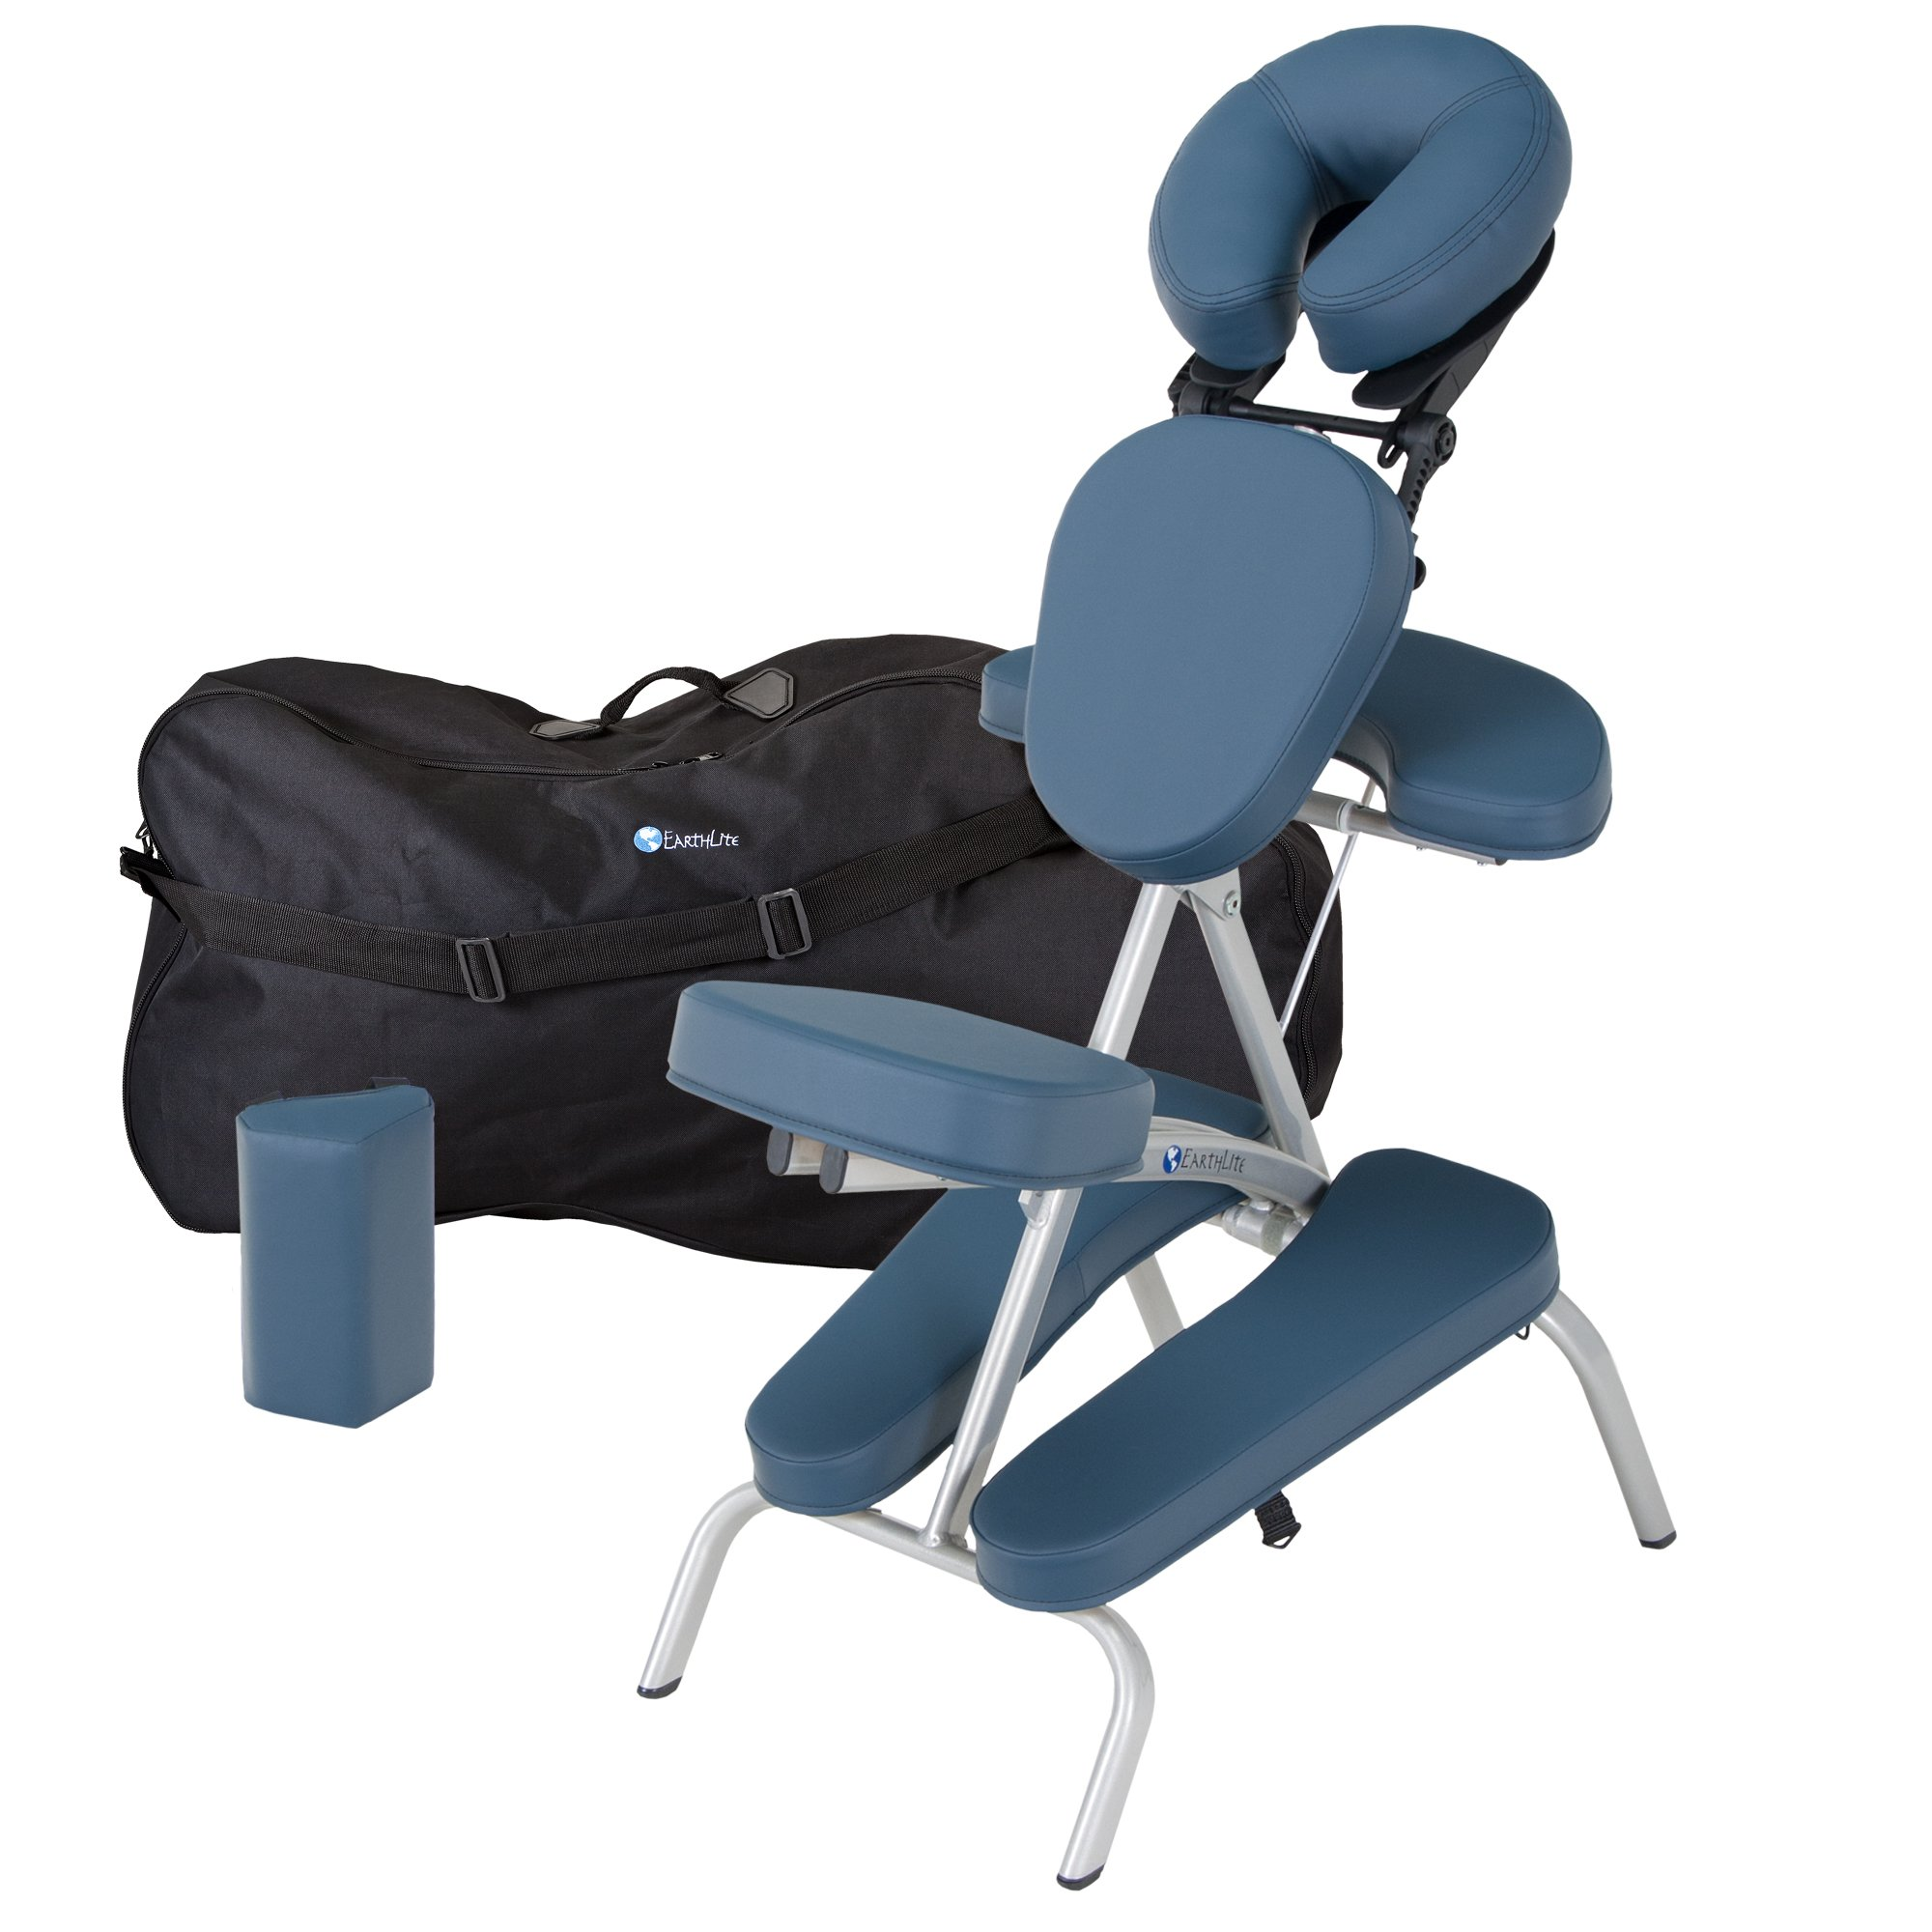 EARTHLITE Portable Massage Chair Package VORTEX - Portable, Compact, Strong and Lightweight incl. Carry Case, Sternum Pad & Strap (15lbs), Mystic Blue by EARTHLITE